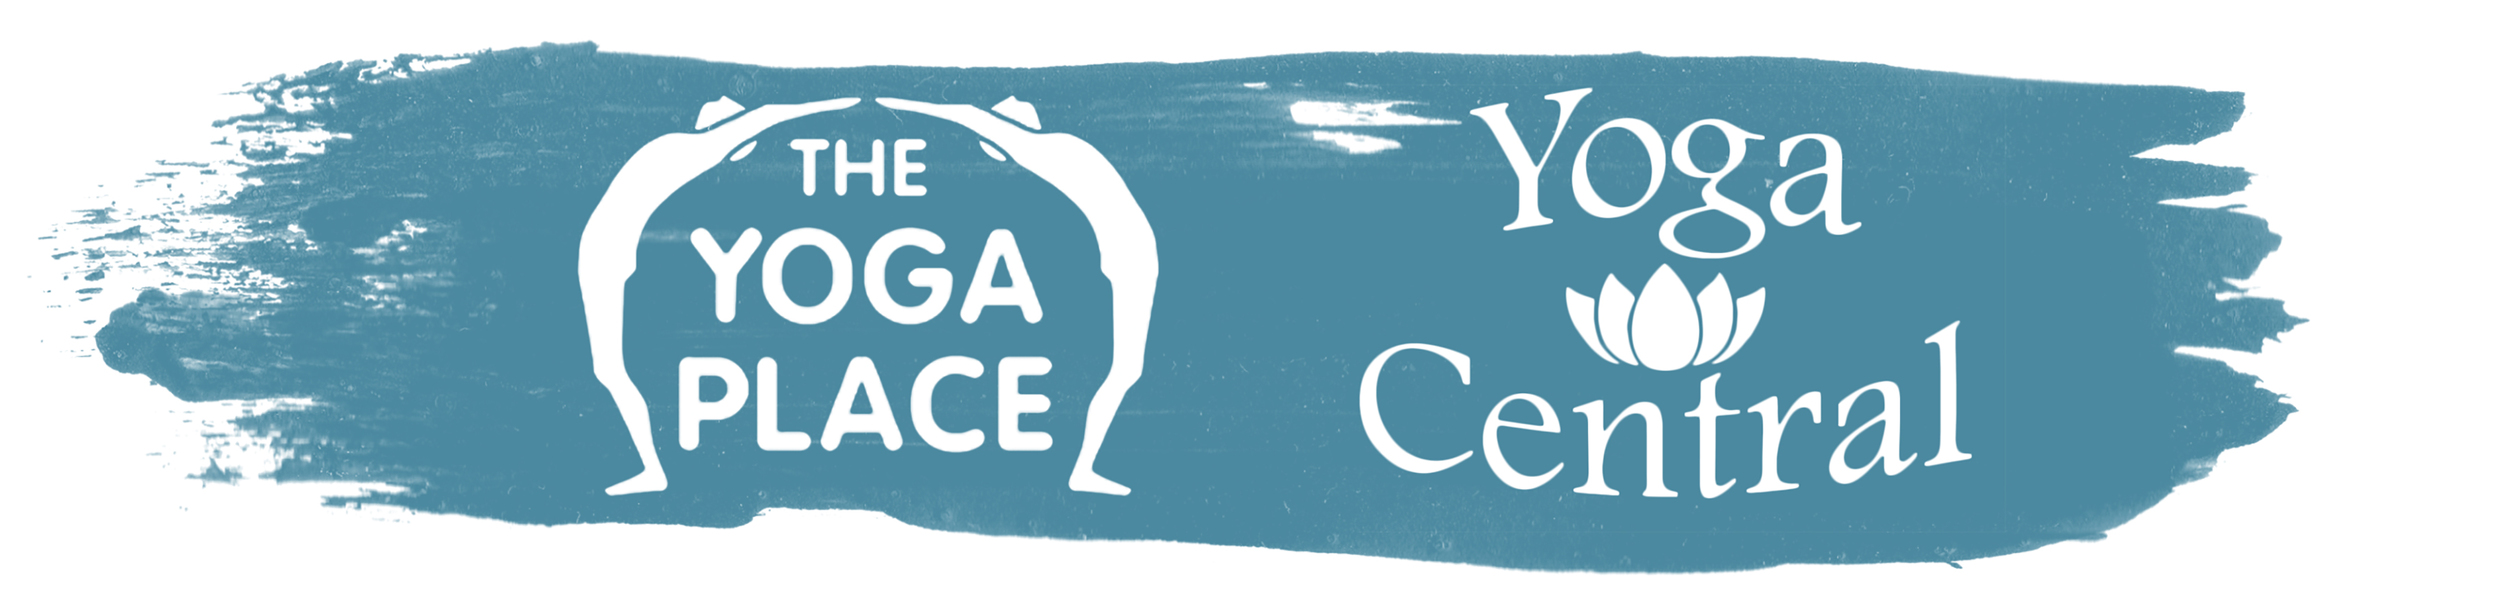 The Yoga Place / Yoga Central